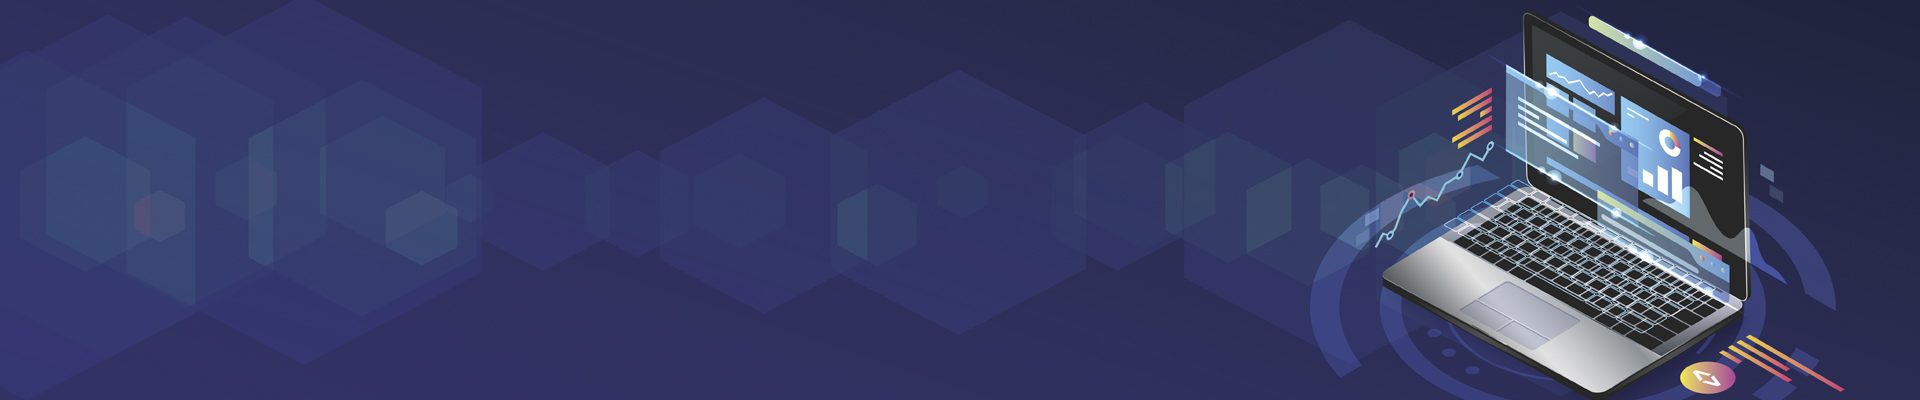 Snow Software-banner